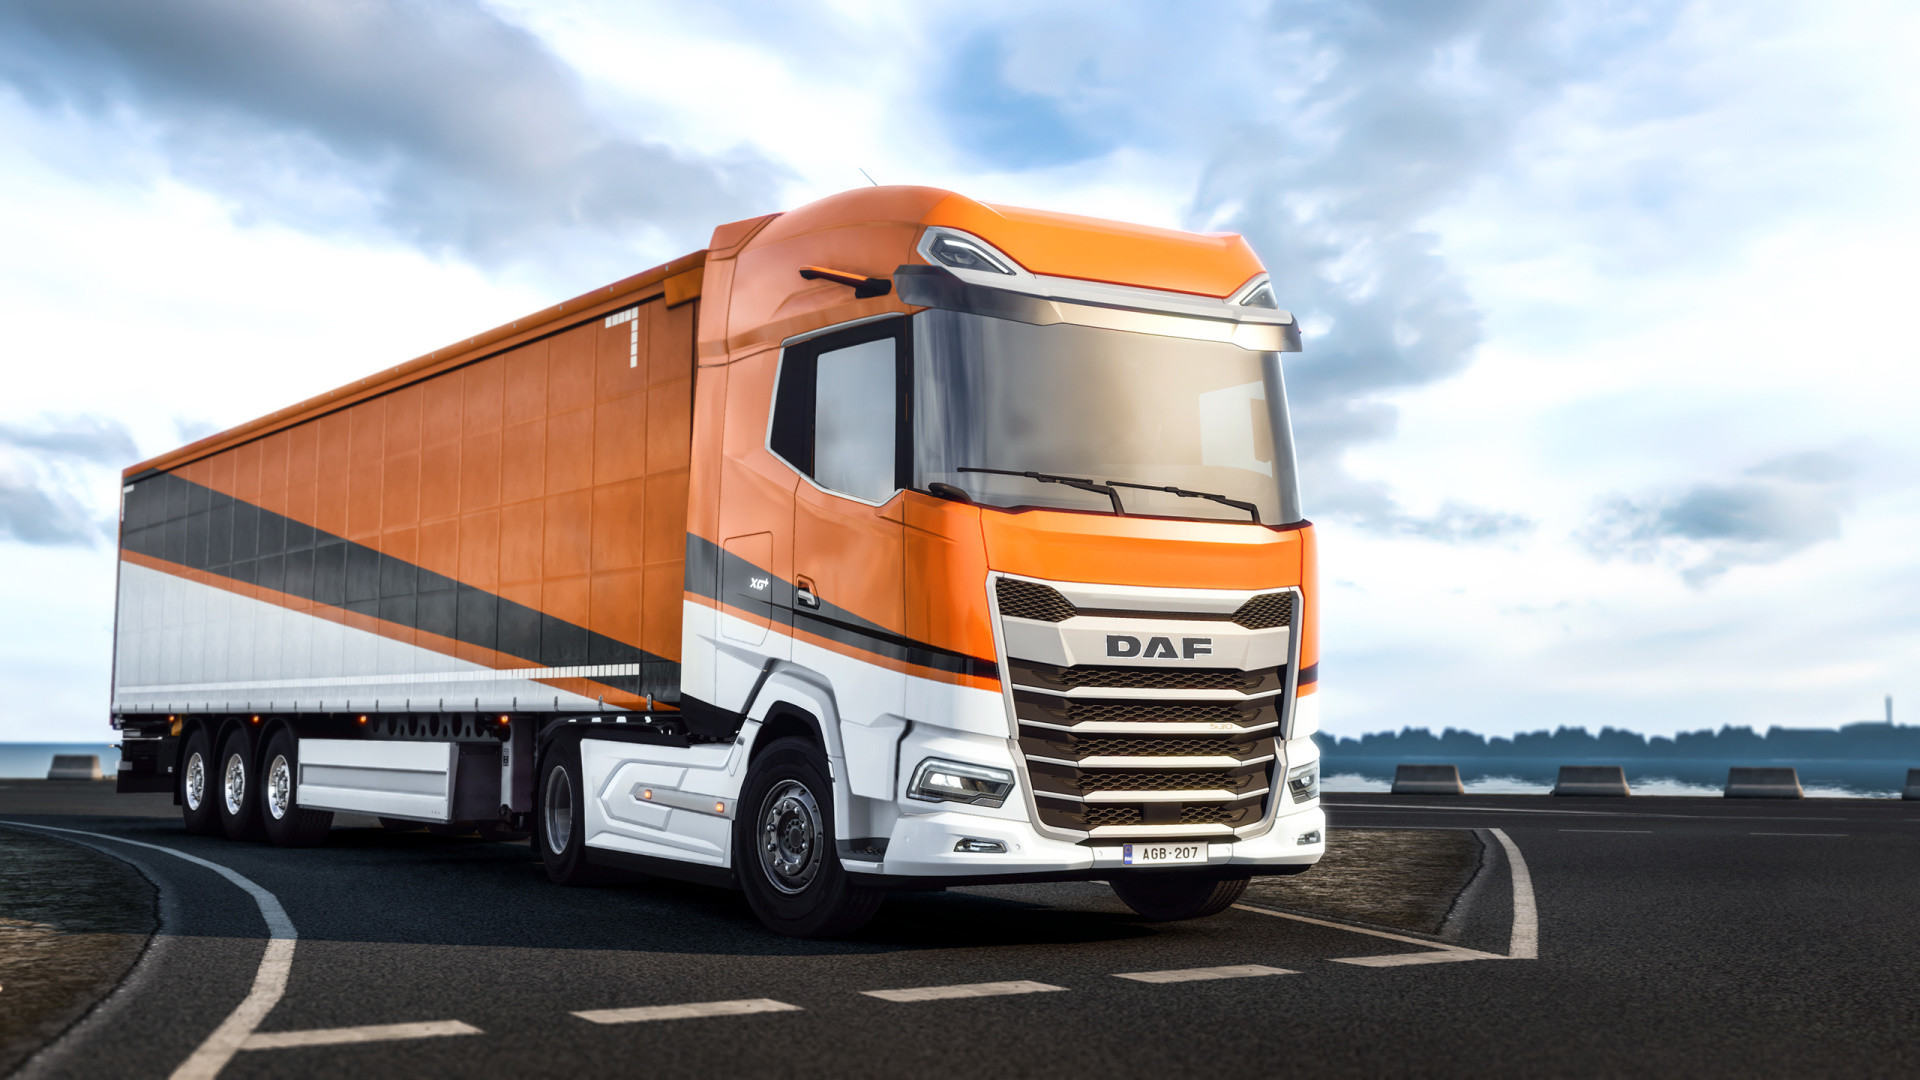 Visiting the sea with the new DAF